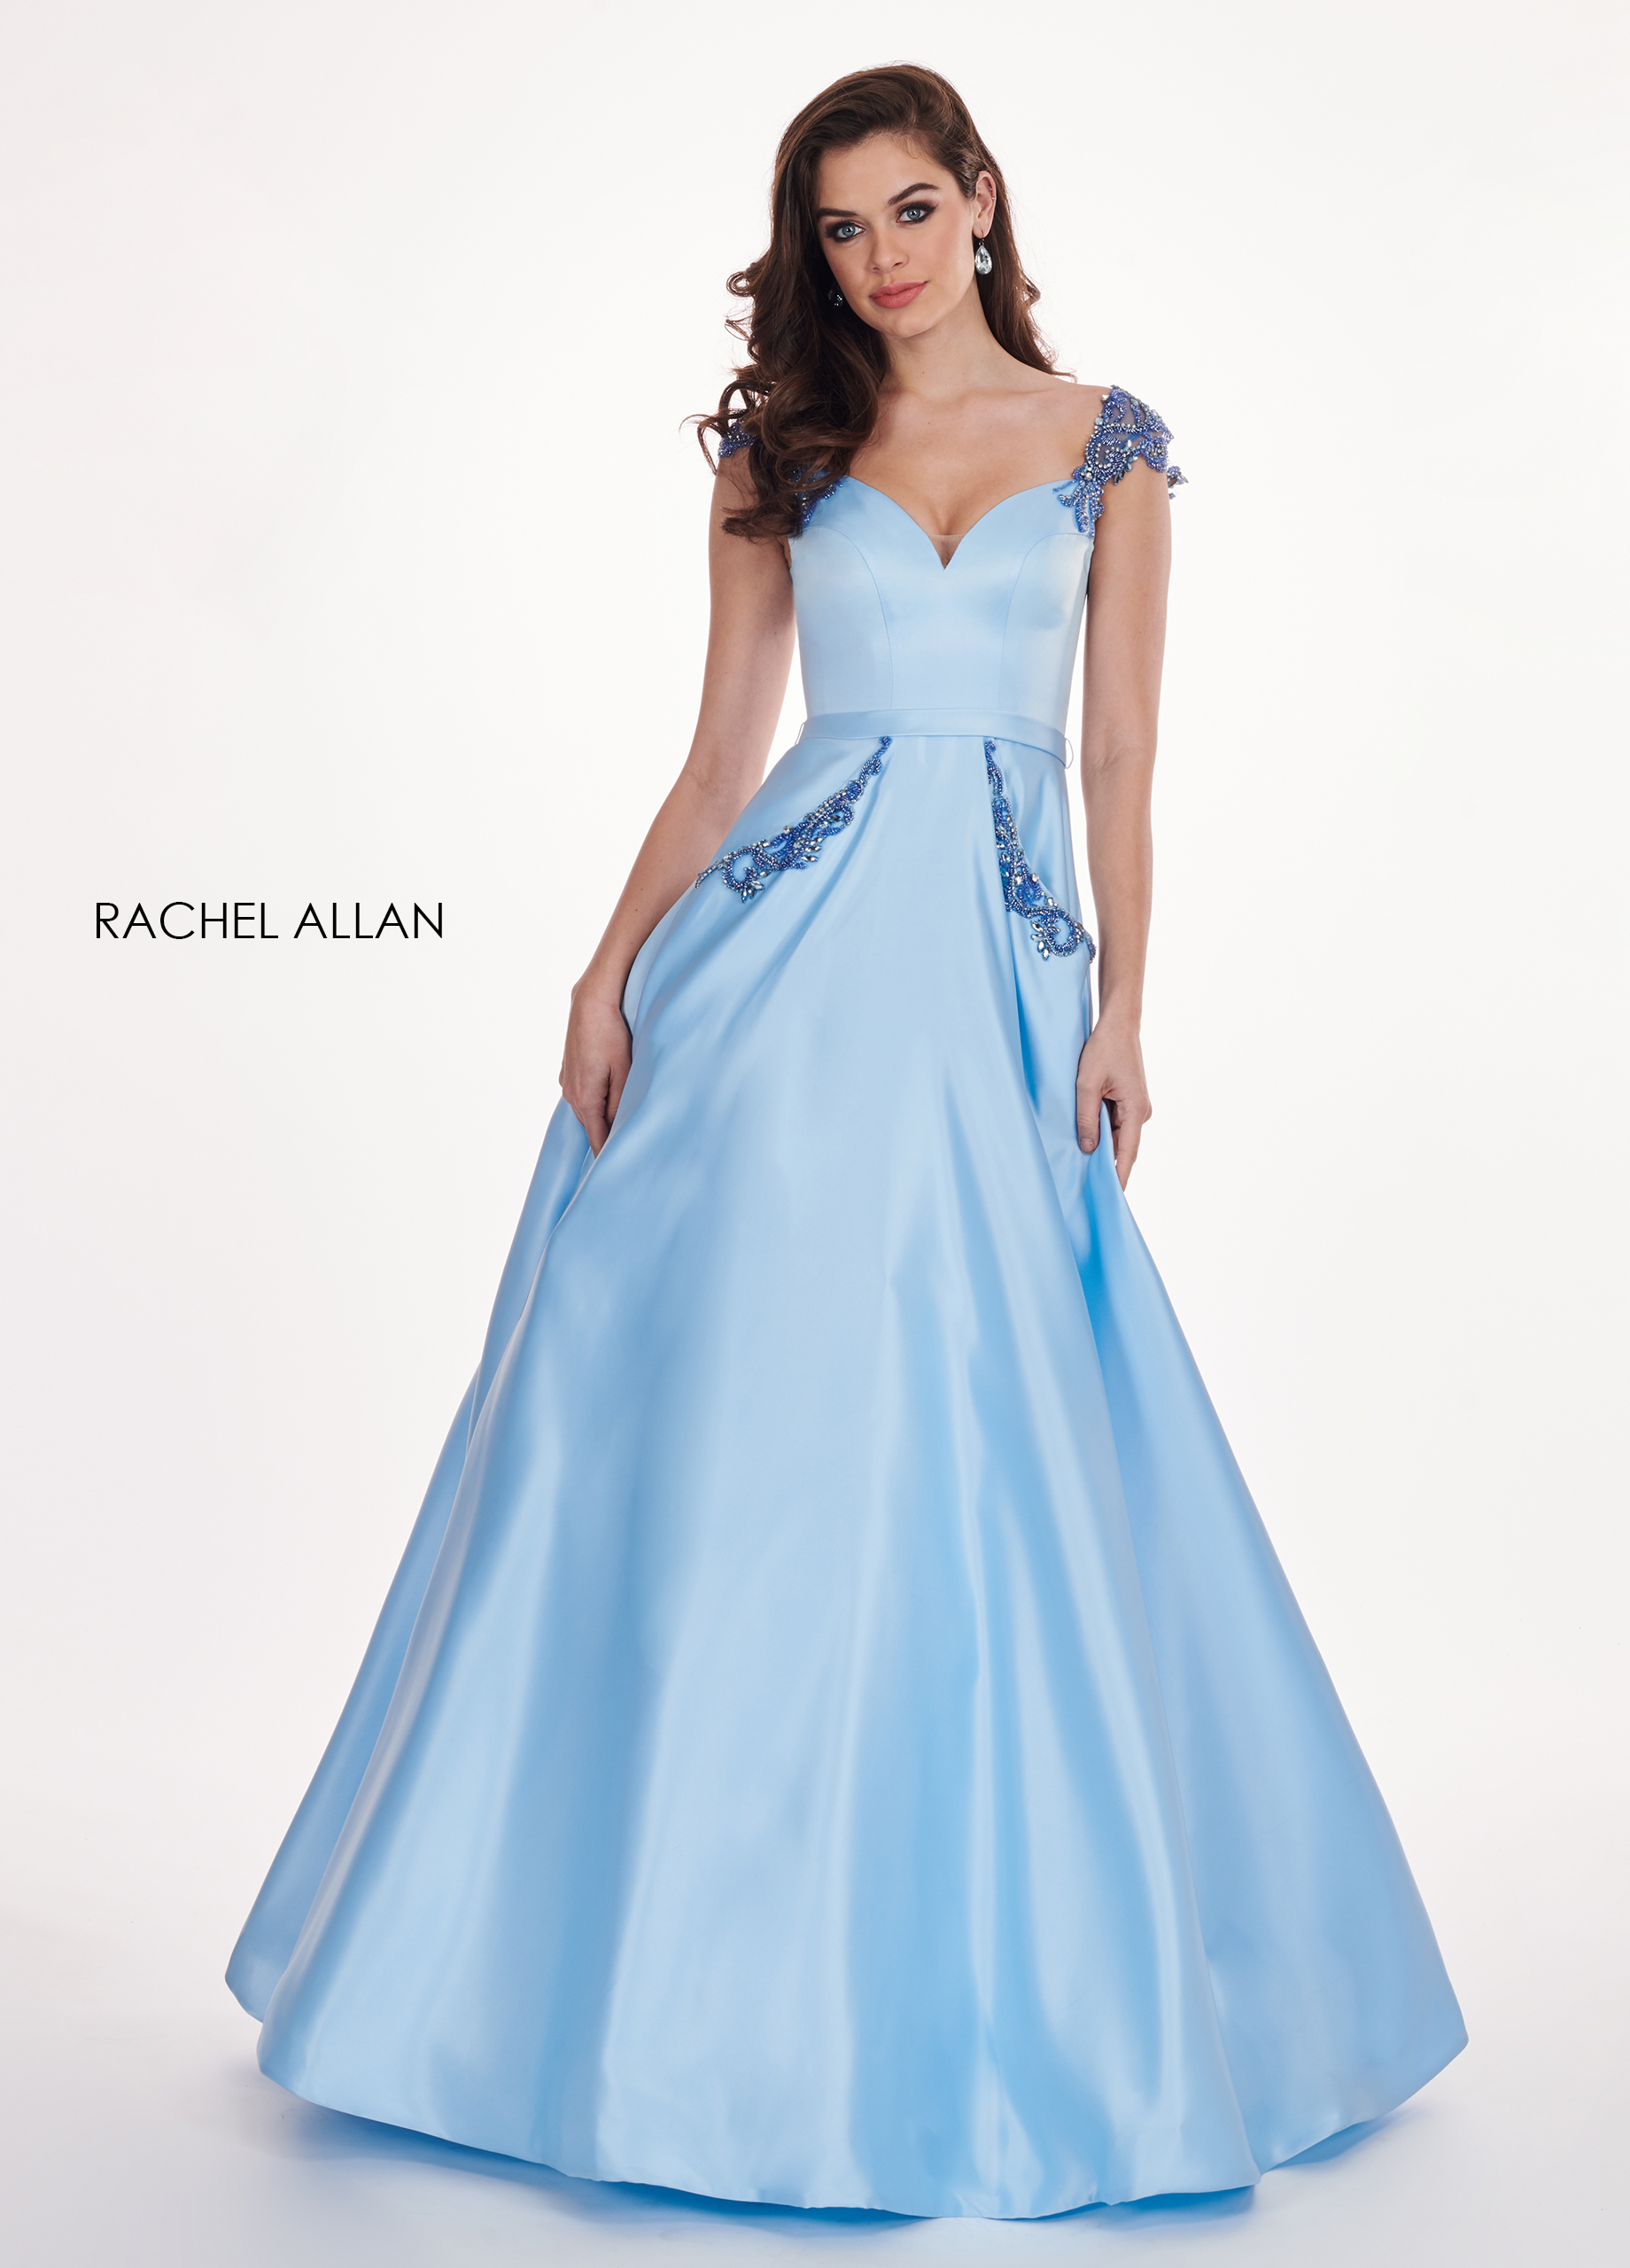 Sweetheart A-Line Prom Dresses in Blue Color